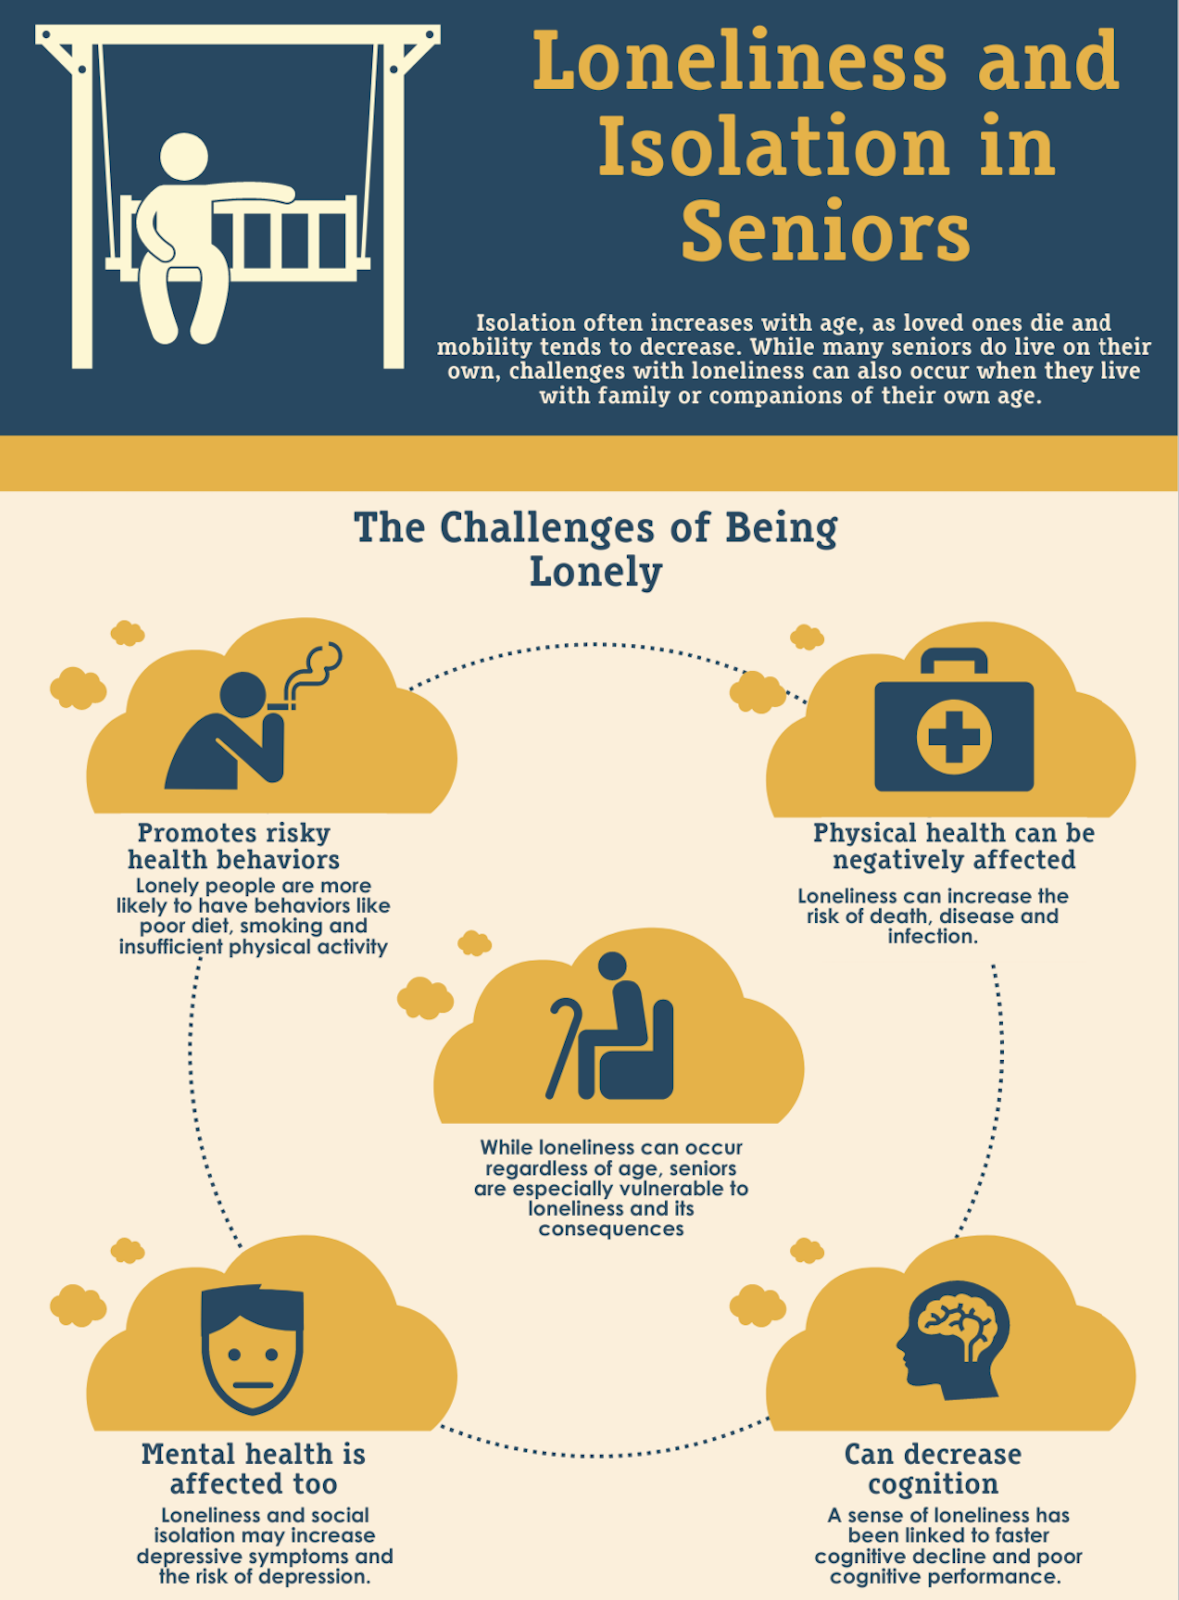 Sherry Wu explores the impact of social isolation on residents in long-term care